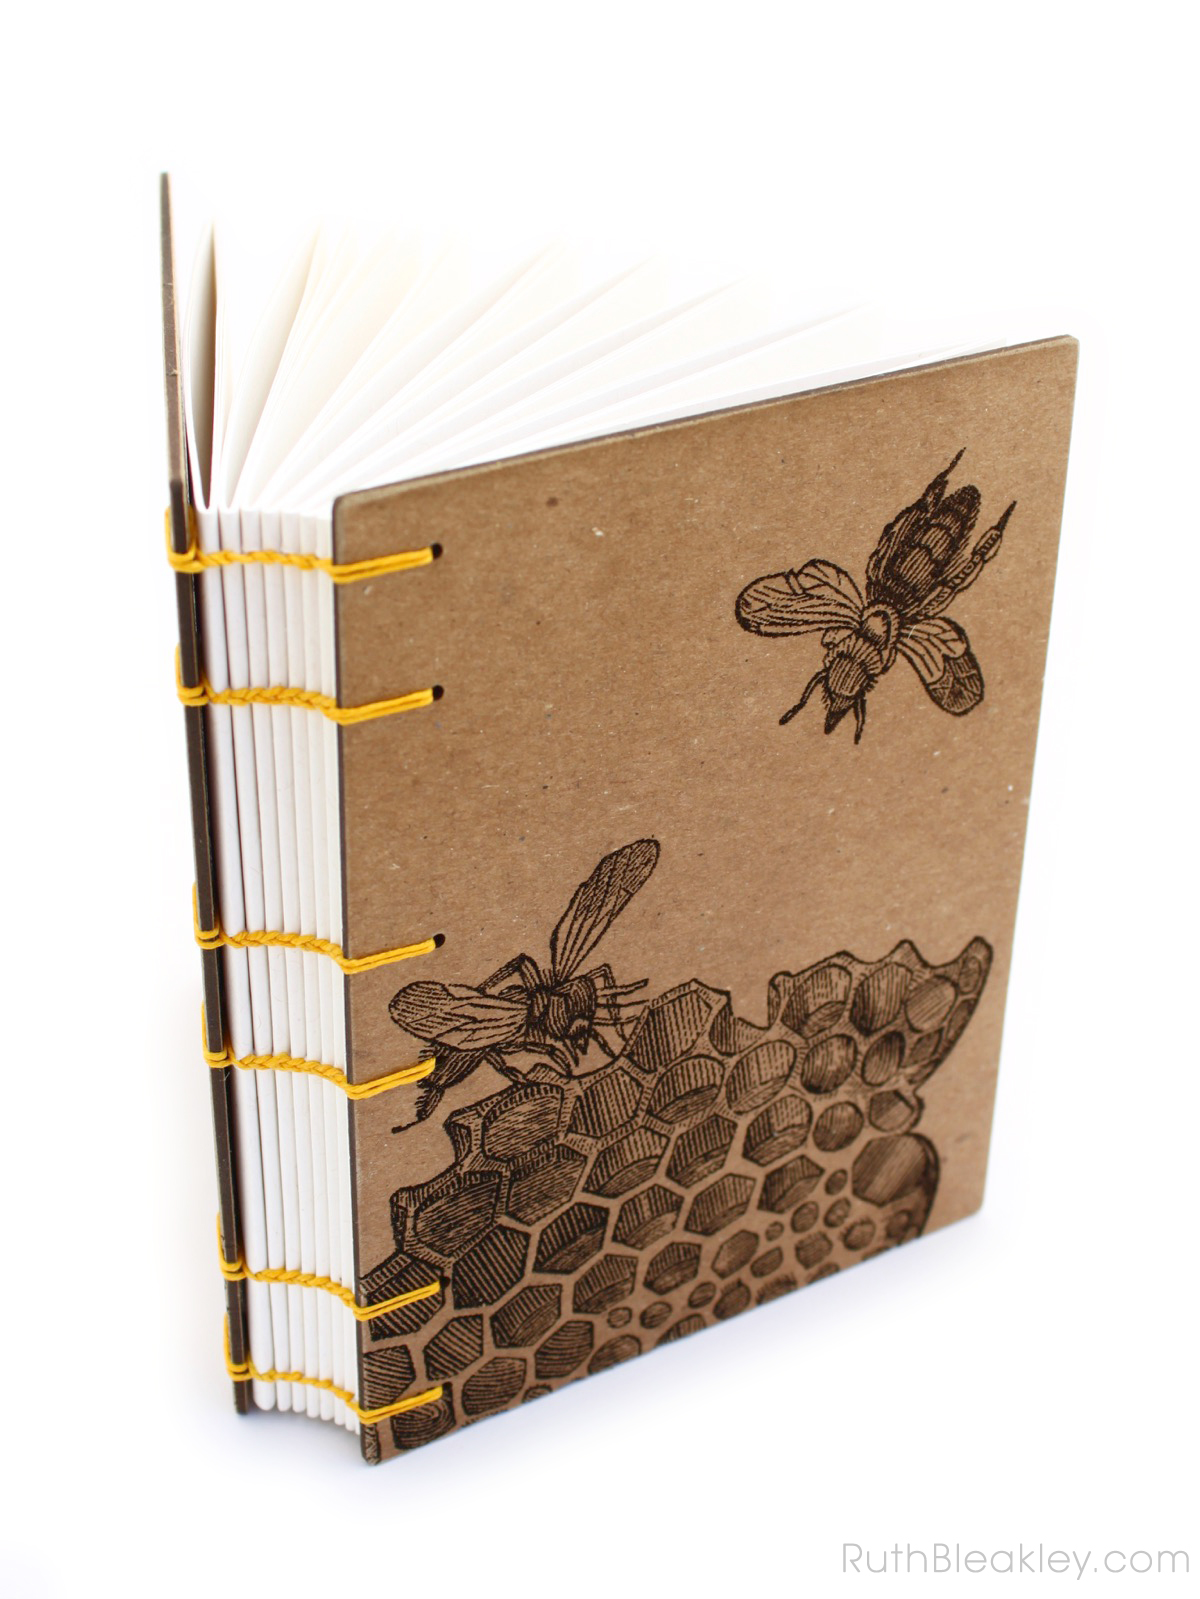 Honeybee Handmade Journal made by Ruth Bleakley with Laser Engraving - gifts for beekeepers